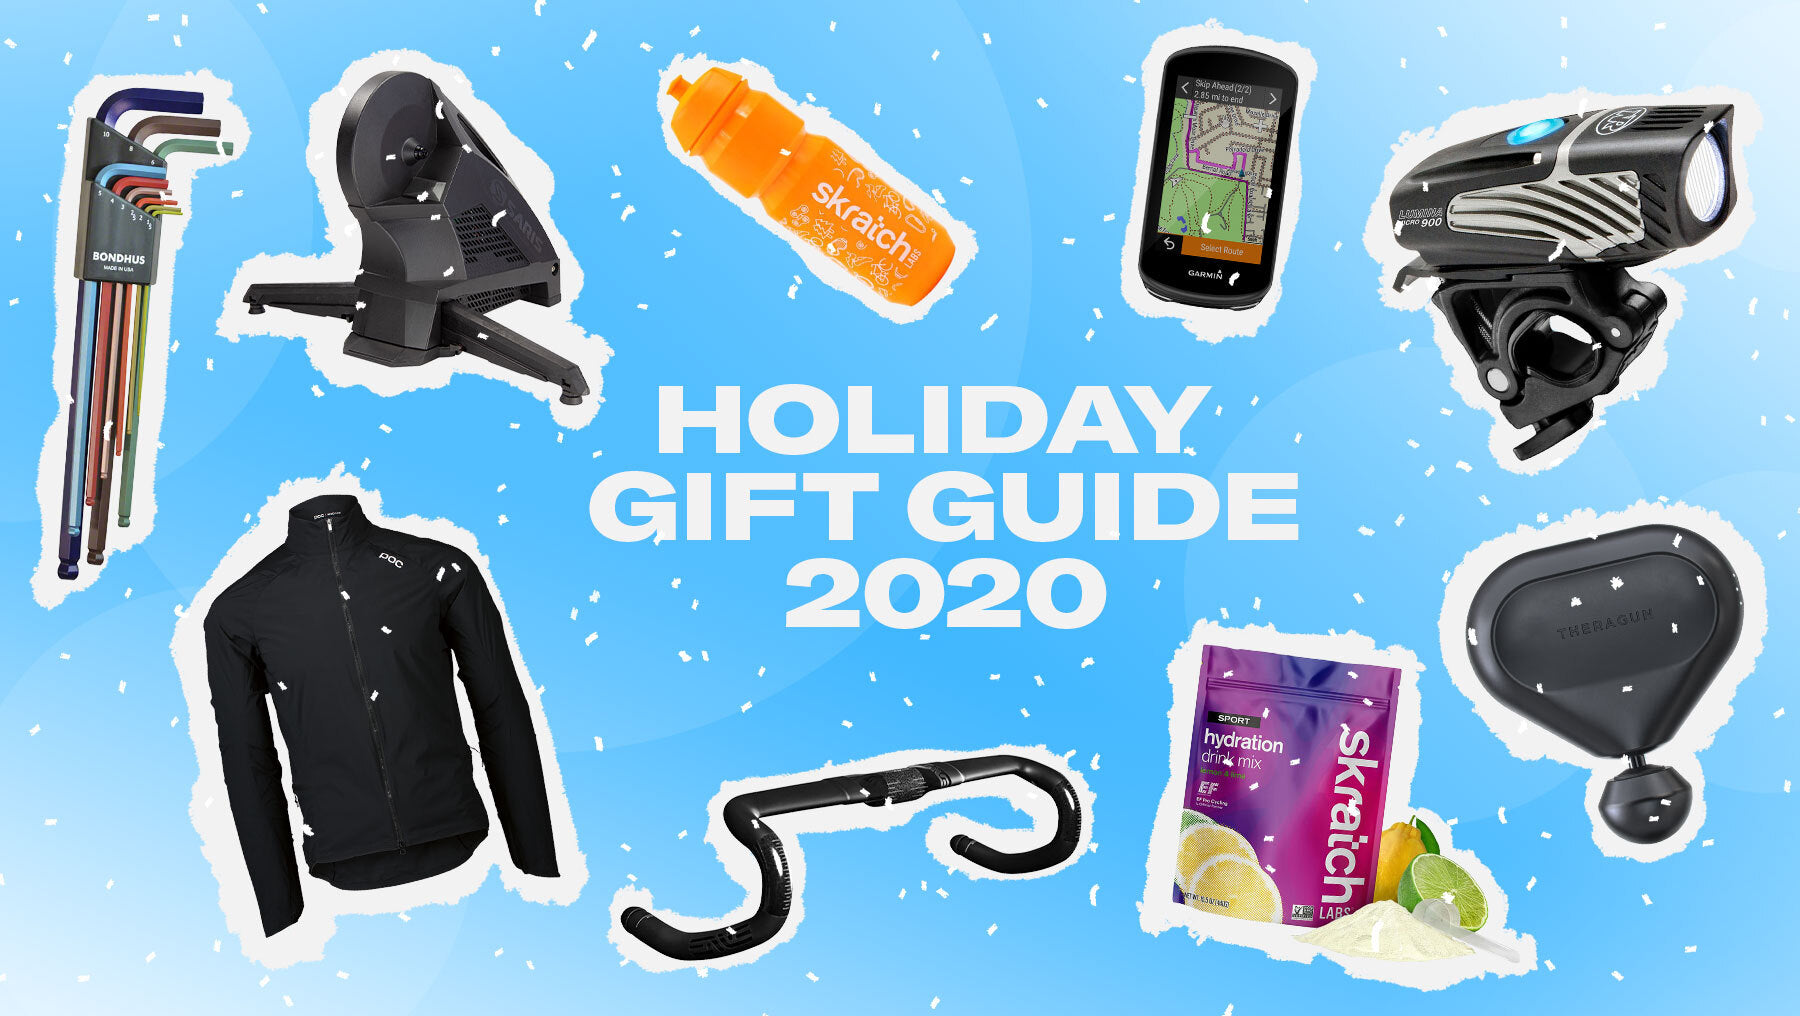 The pro's closet holiday bike gift guide for cyclists